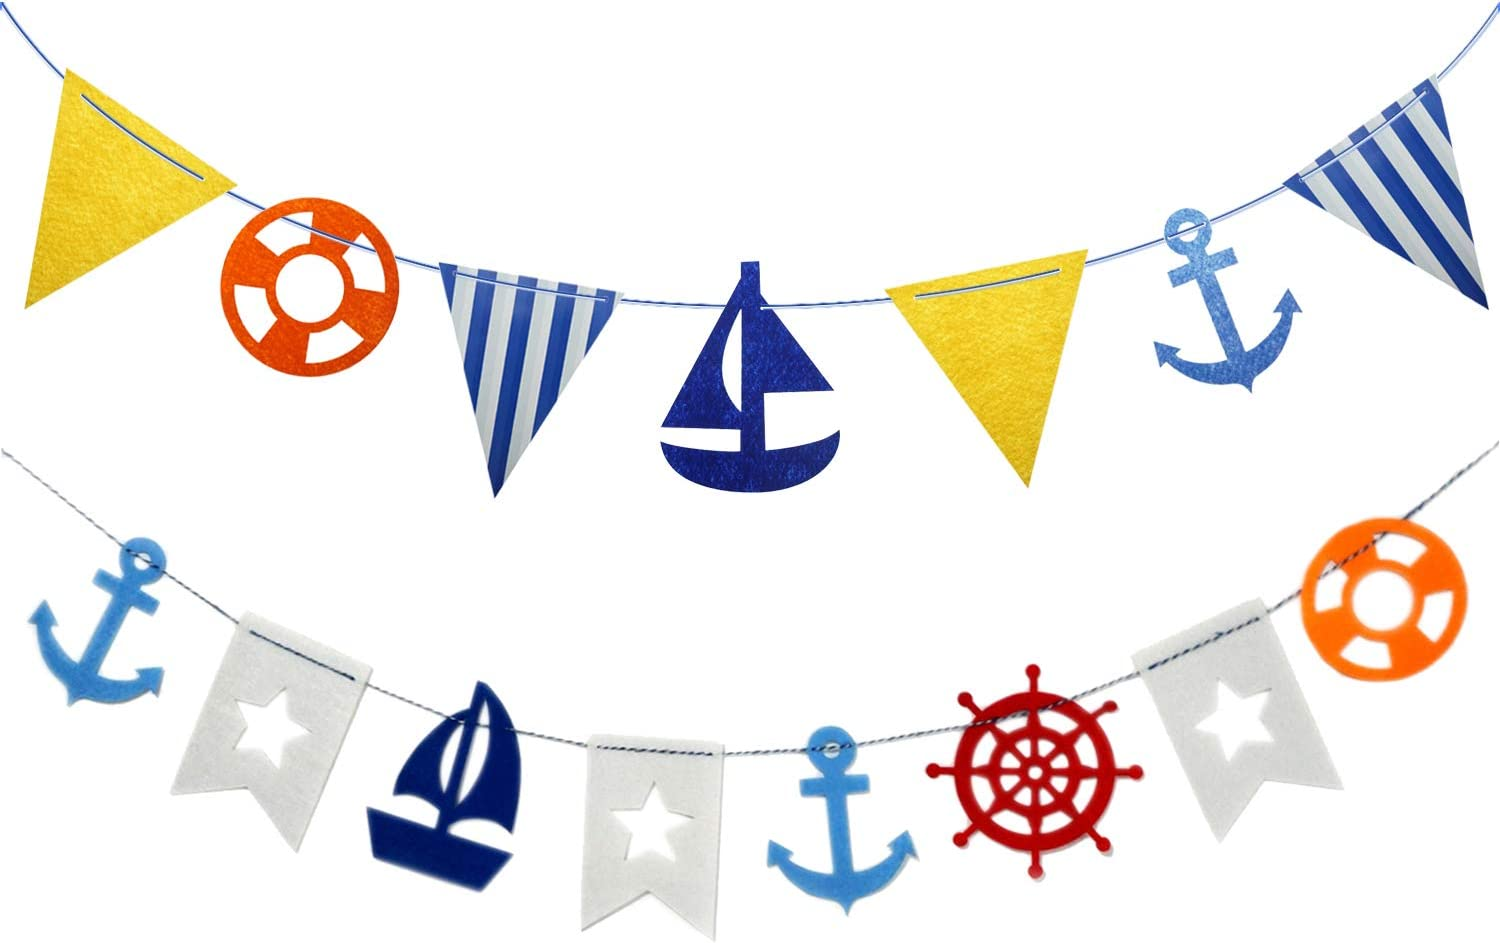 Nautical Banners Of Anchor Boat Pennant Flags For Baby Shower, Birthday, Wedding, Bridal Shower Party Decor Supplies, 2 Counts